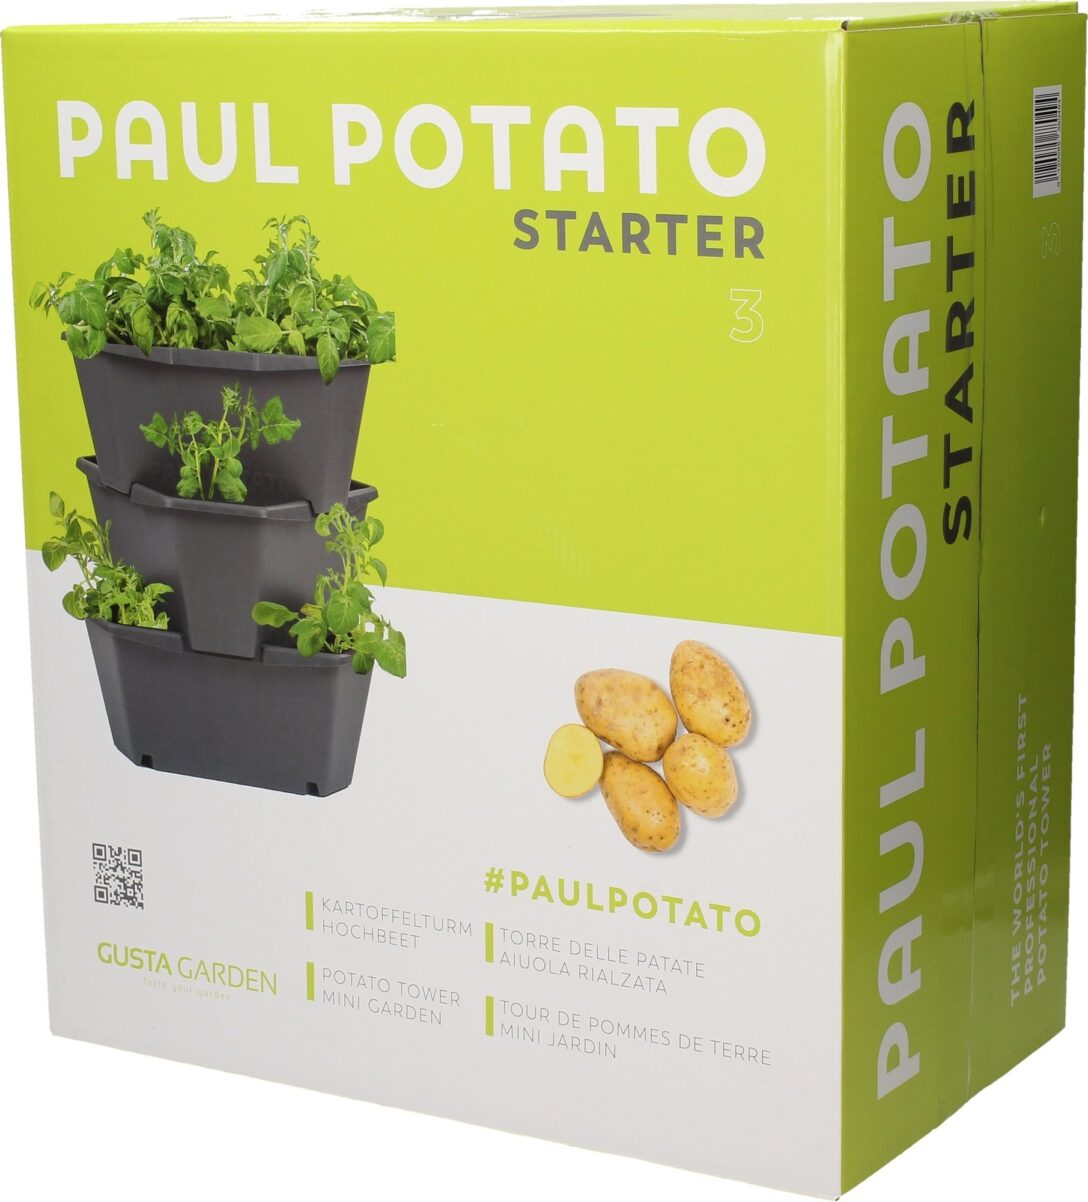 Large Size of Gusta Garden Paul Potato Starter 3 Etagen From Austria Wohnzimmer Paul Potato Kartoffelturm Erfahrungen